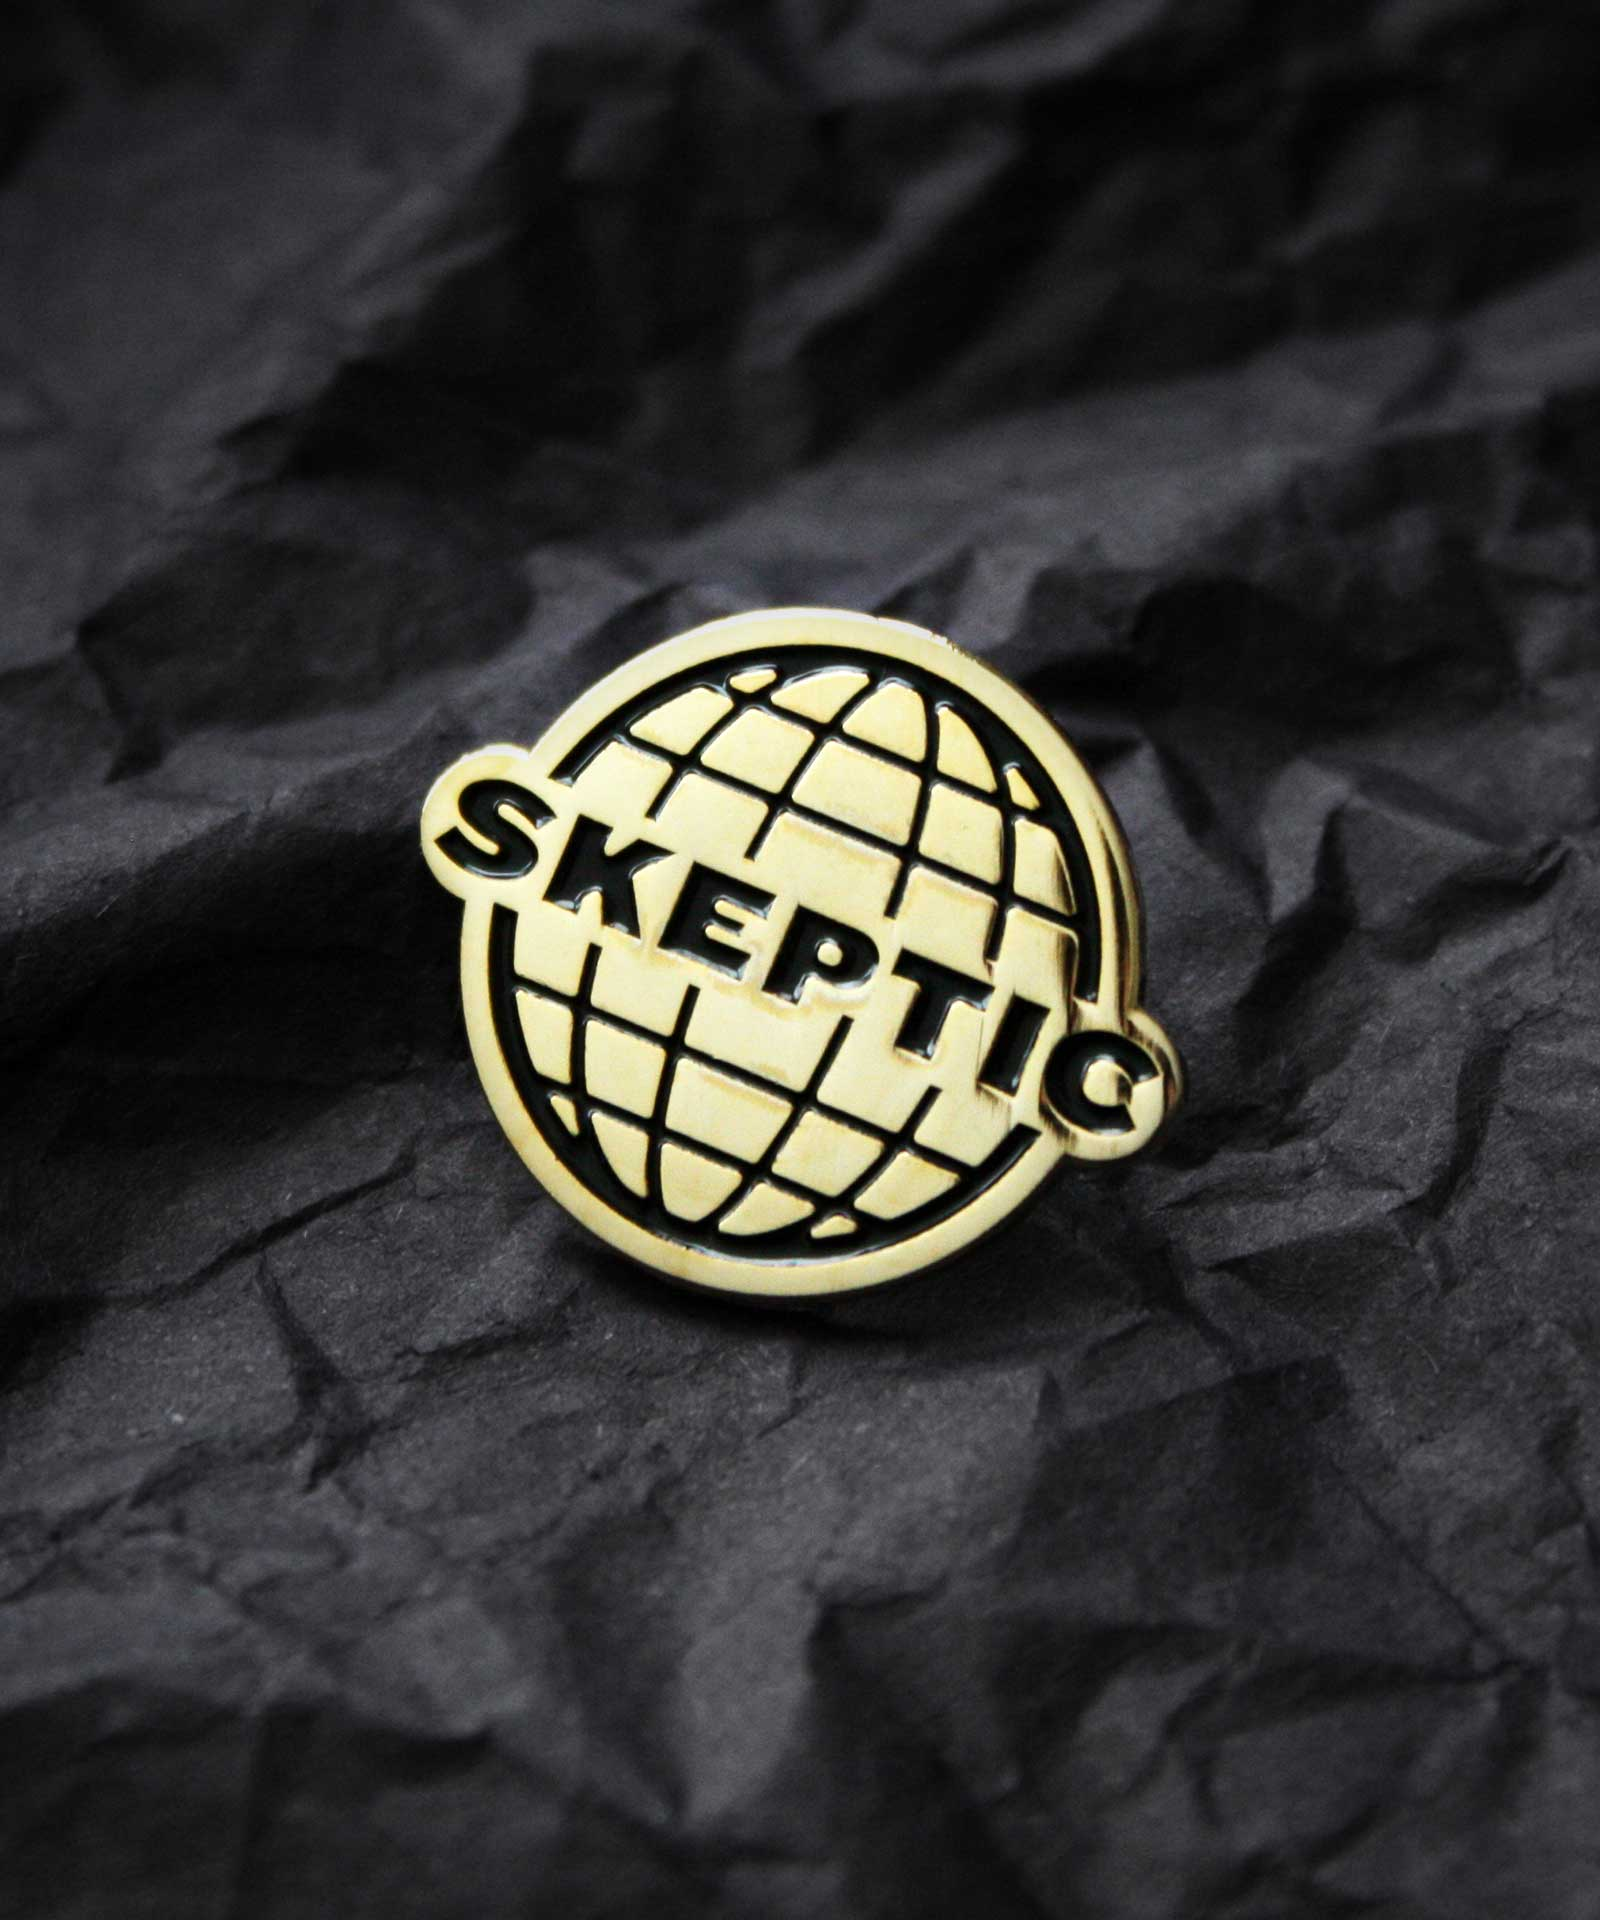 Product photography of gold enamel pin